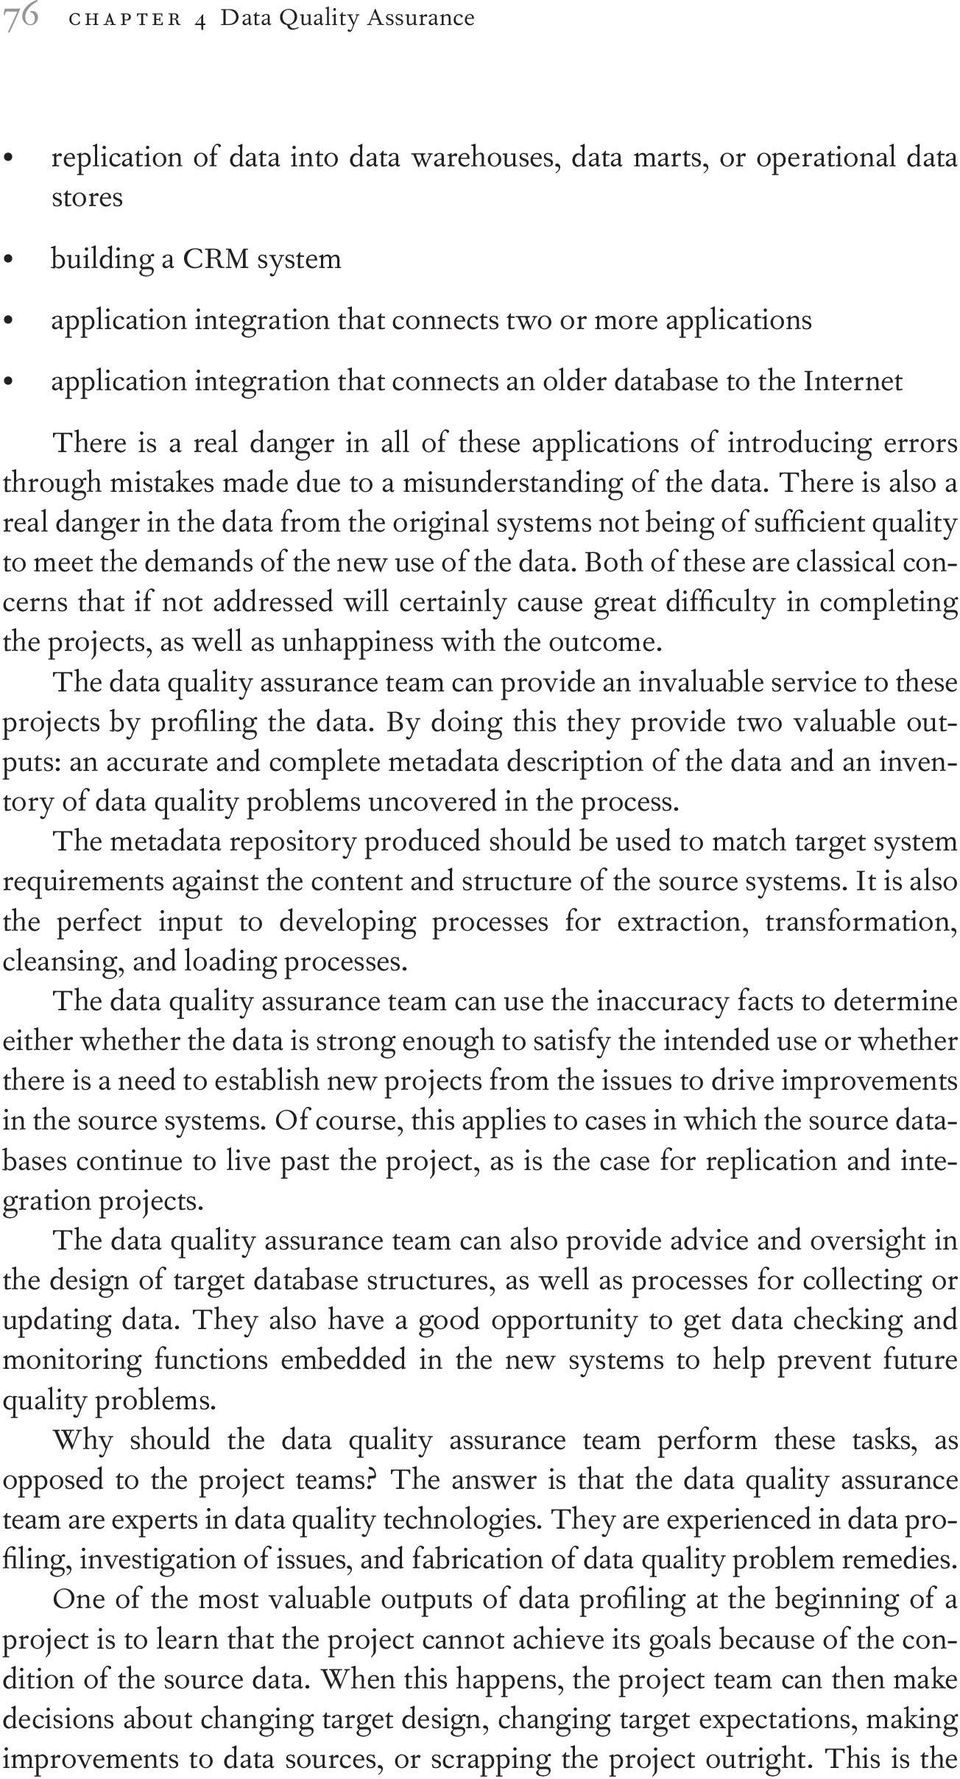 misunderstanding of the data. There is also a real danger in the data from the original systems not being of sufficient quality to meet the demands of the new use of the data.